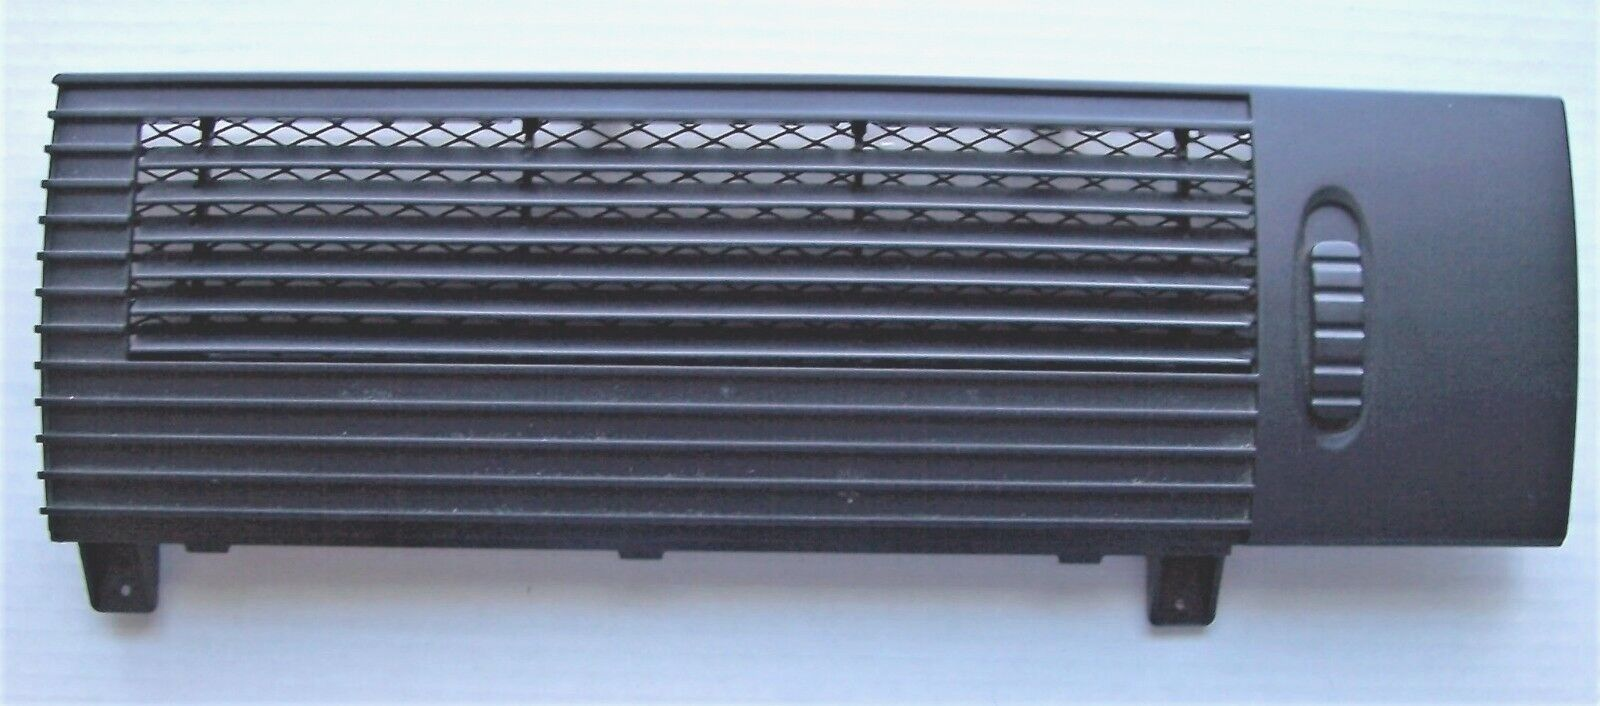 Oreck XL Professional Air Purifier Air Direction Grill OEM Part Number 21003-01